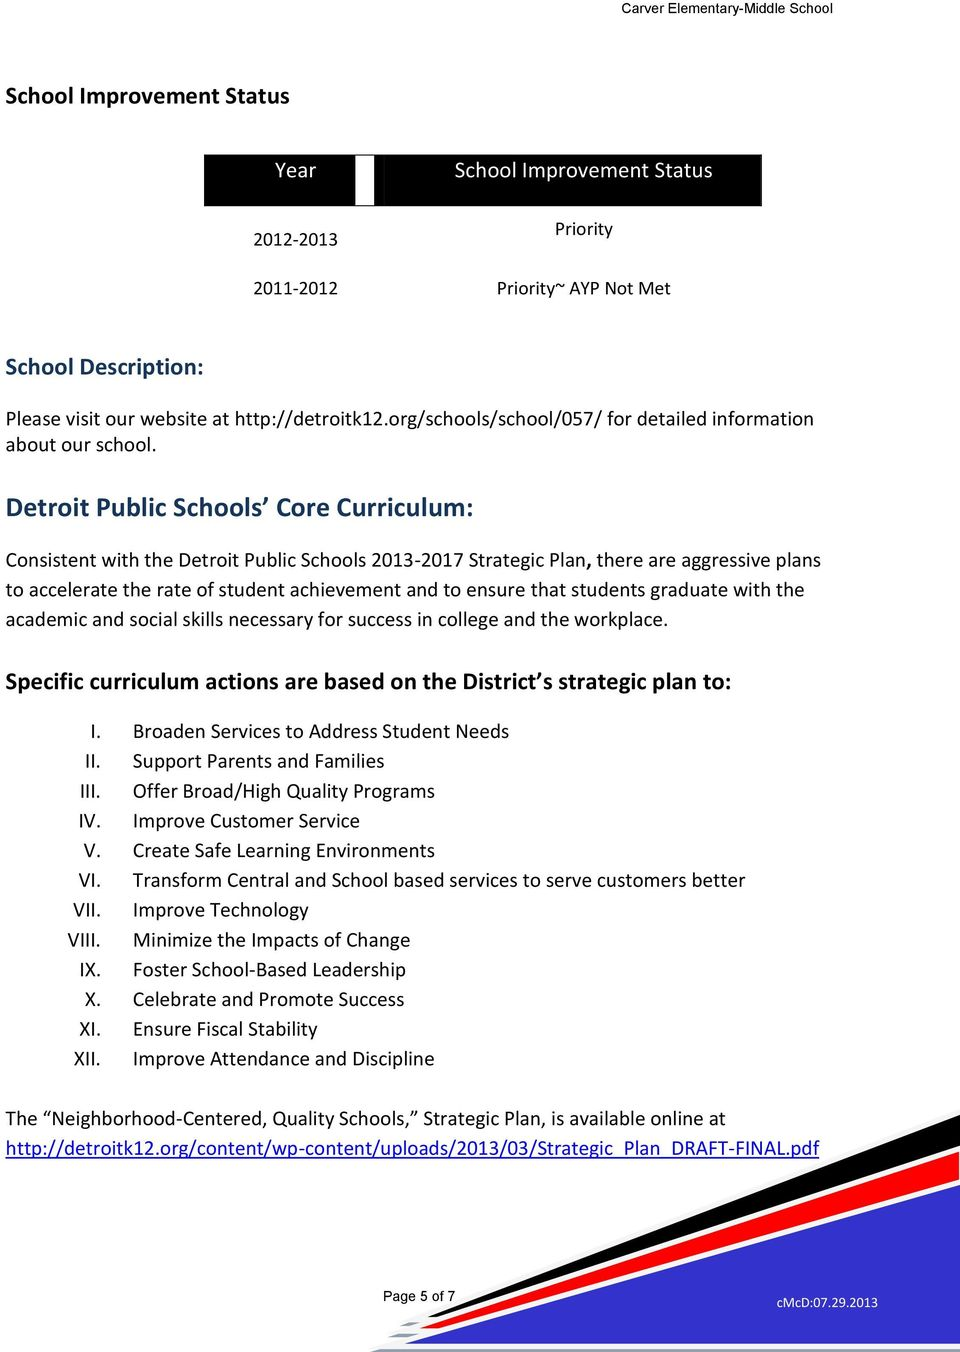 Detroit Public Schools Core Curriculum: Consistent with the Detroit Public Schools 2013-2017 Strategic Plan, there are aggressive plans to accelerate the rate of student achievement and to ensure